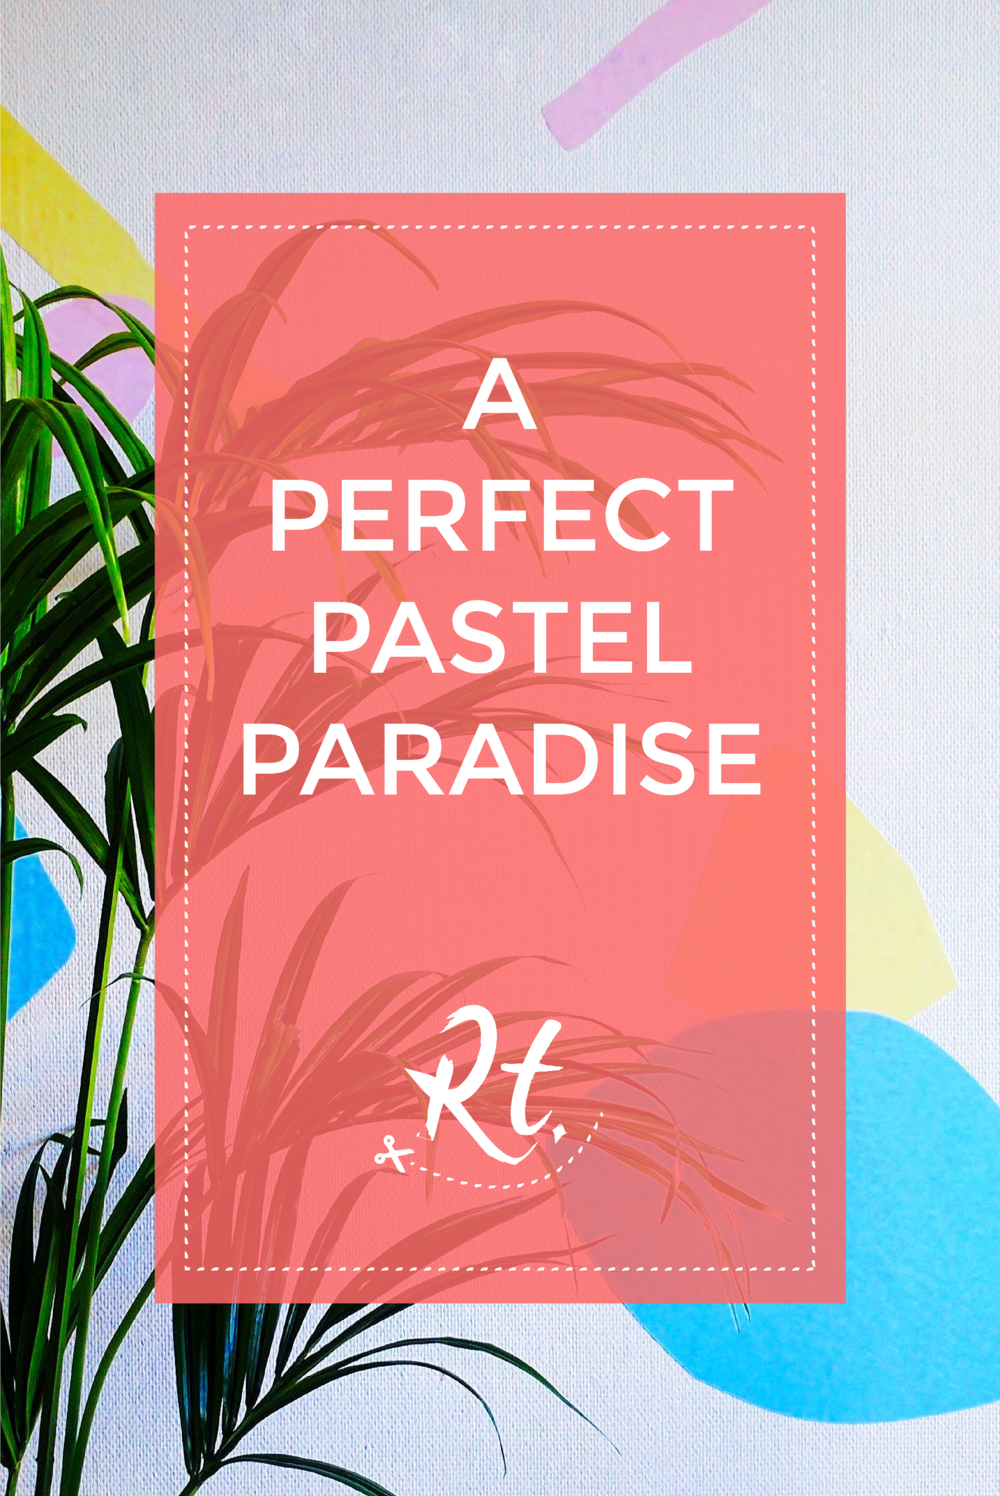 A Perfect Pastel Paradise interior wall from The Bloggers Market